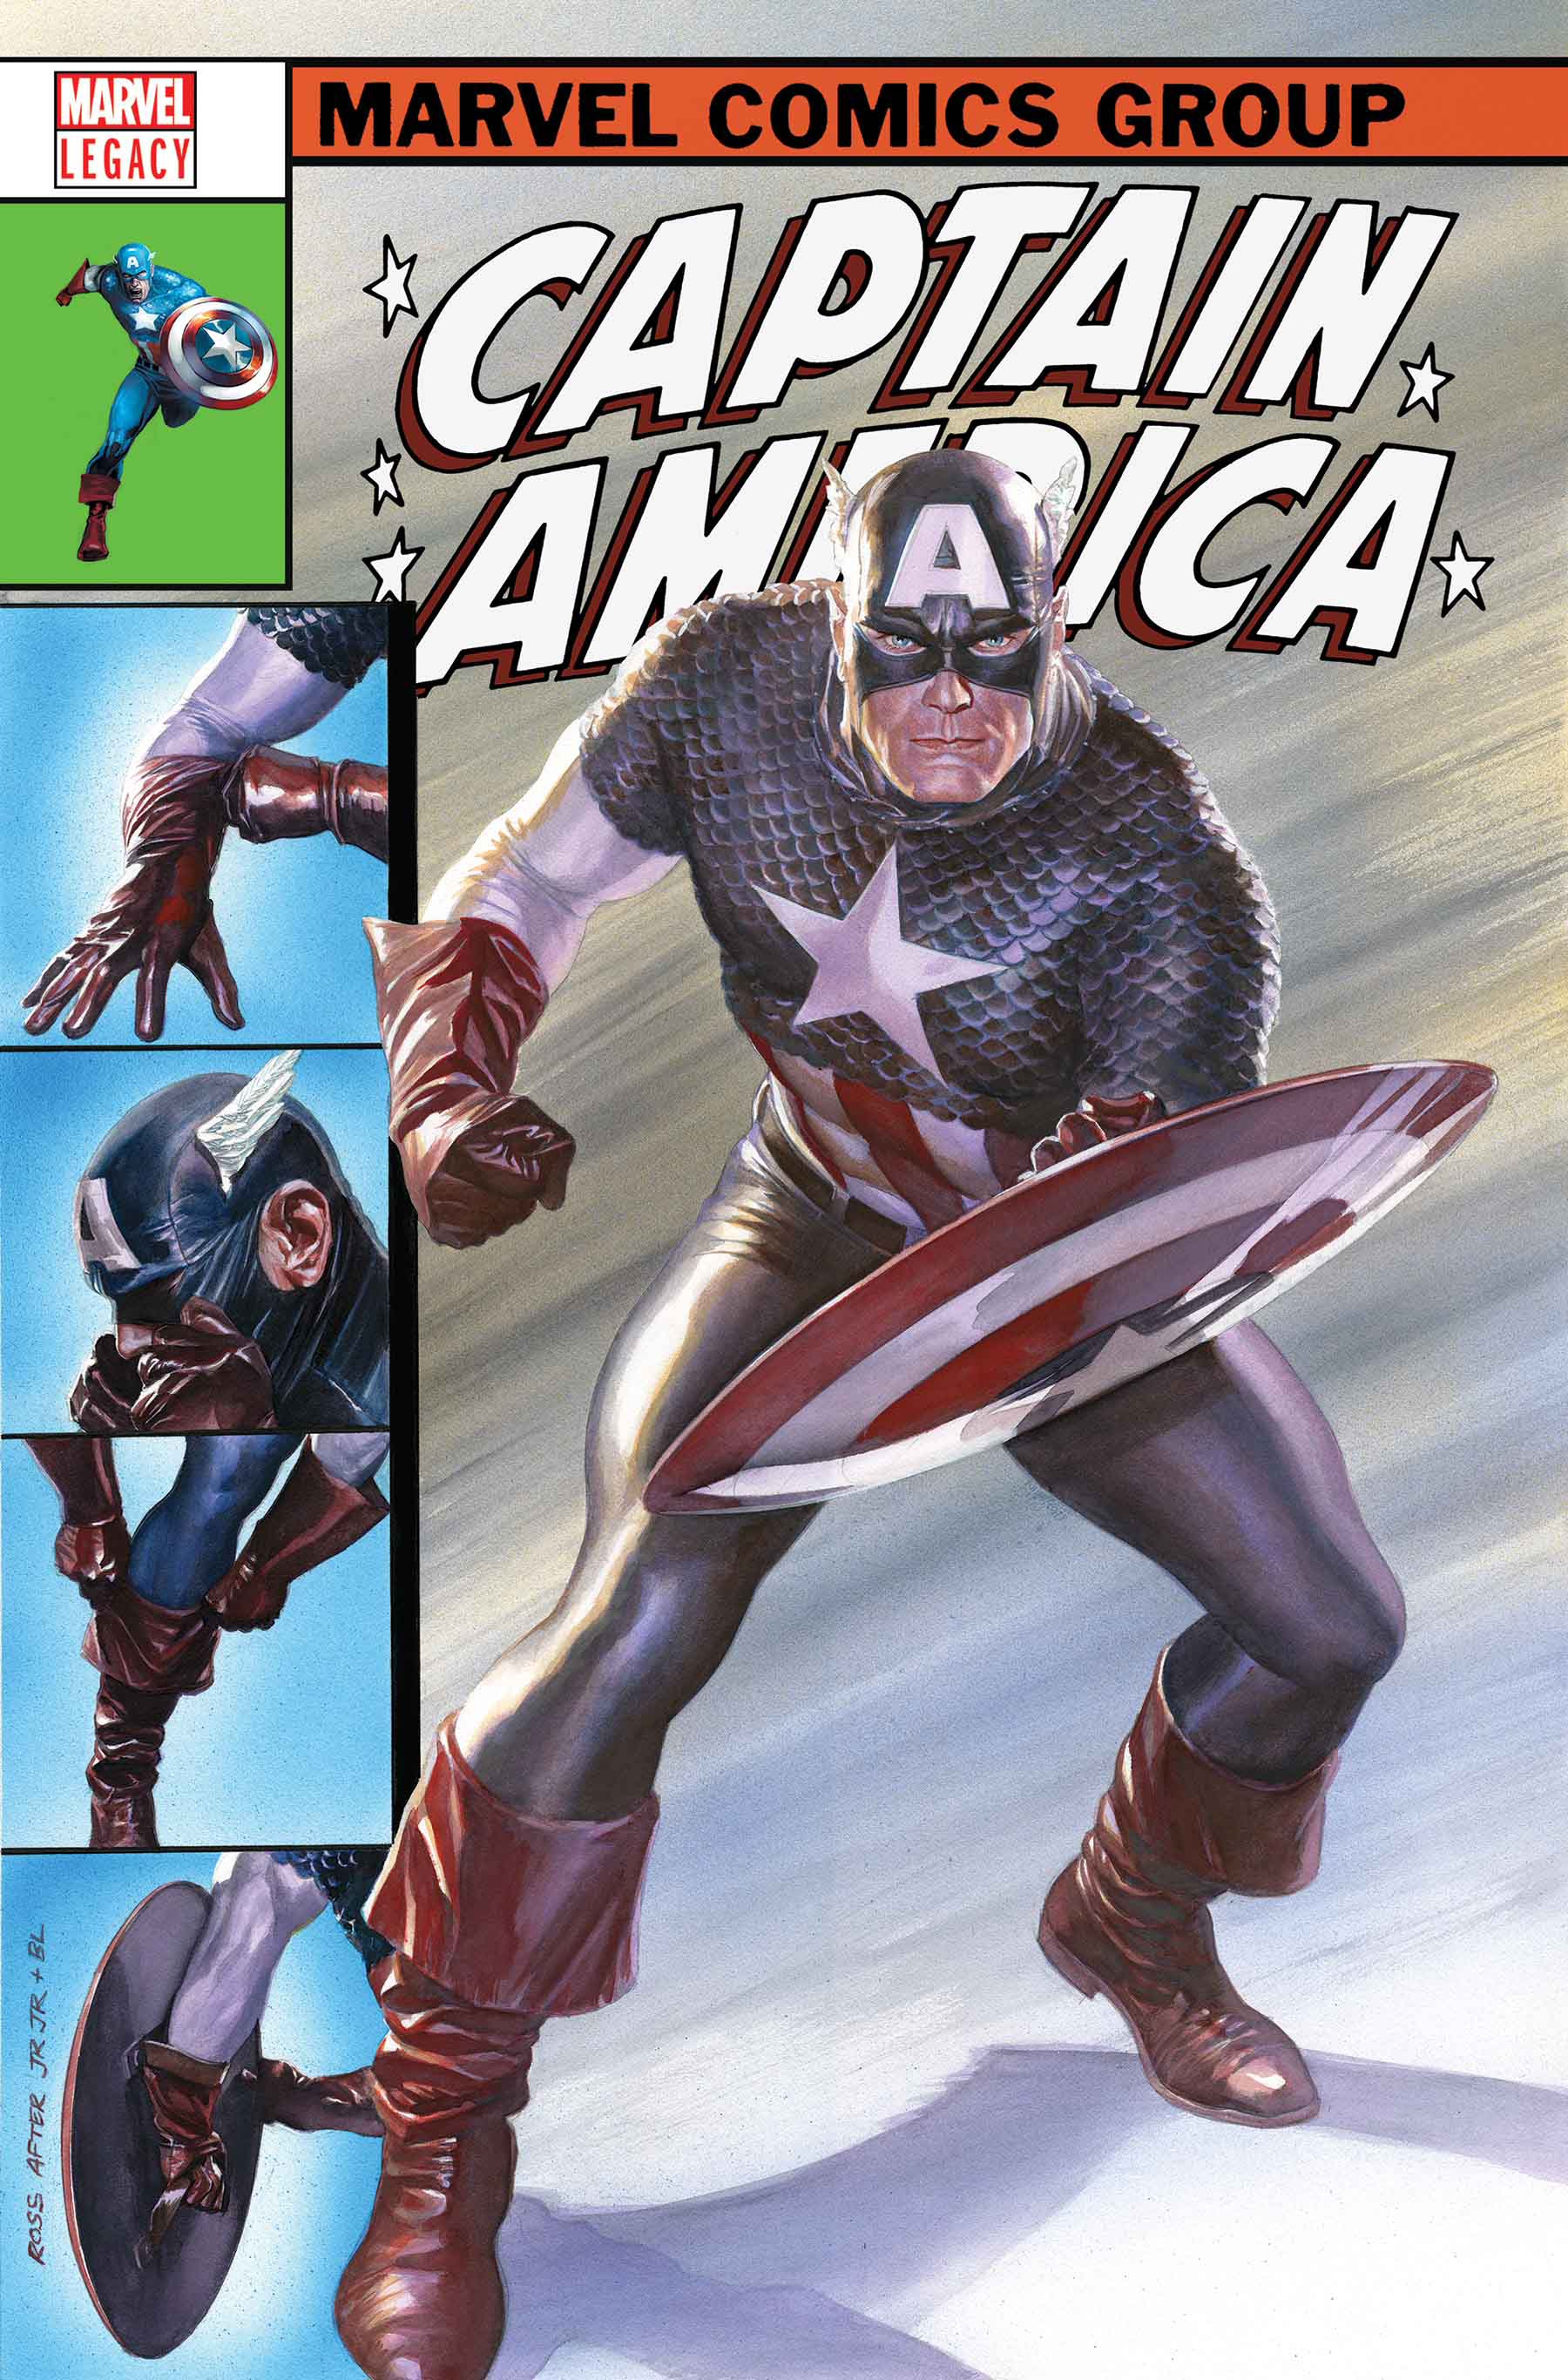 CAPTAIN AMERICA #695 BY ROSS POSTER